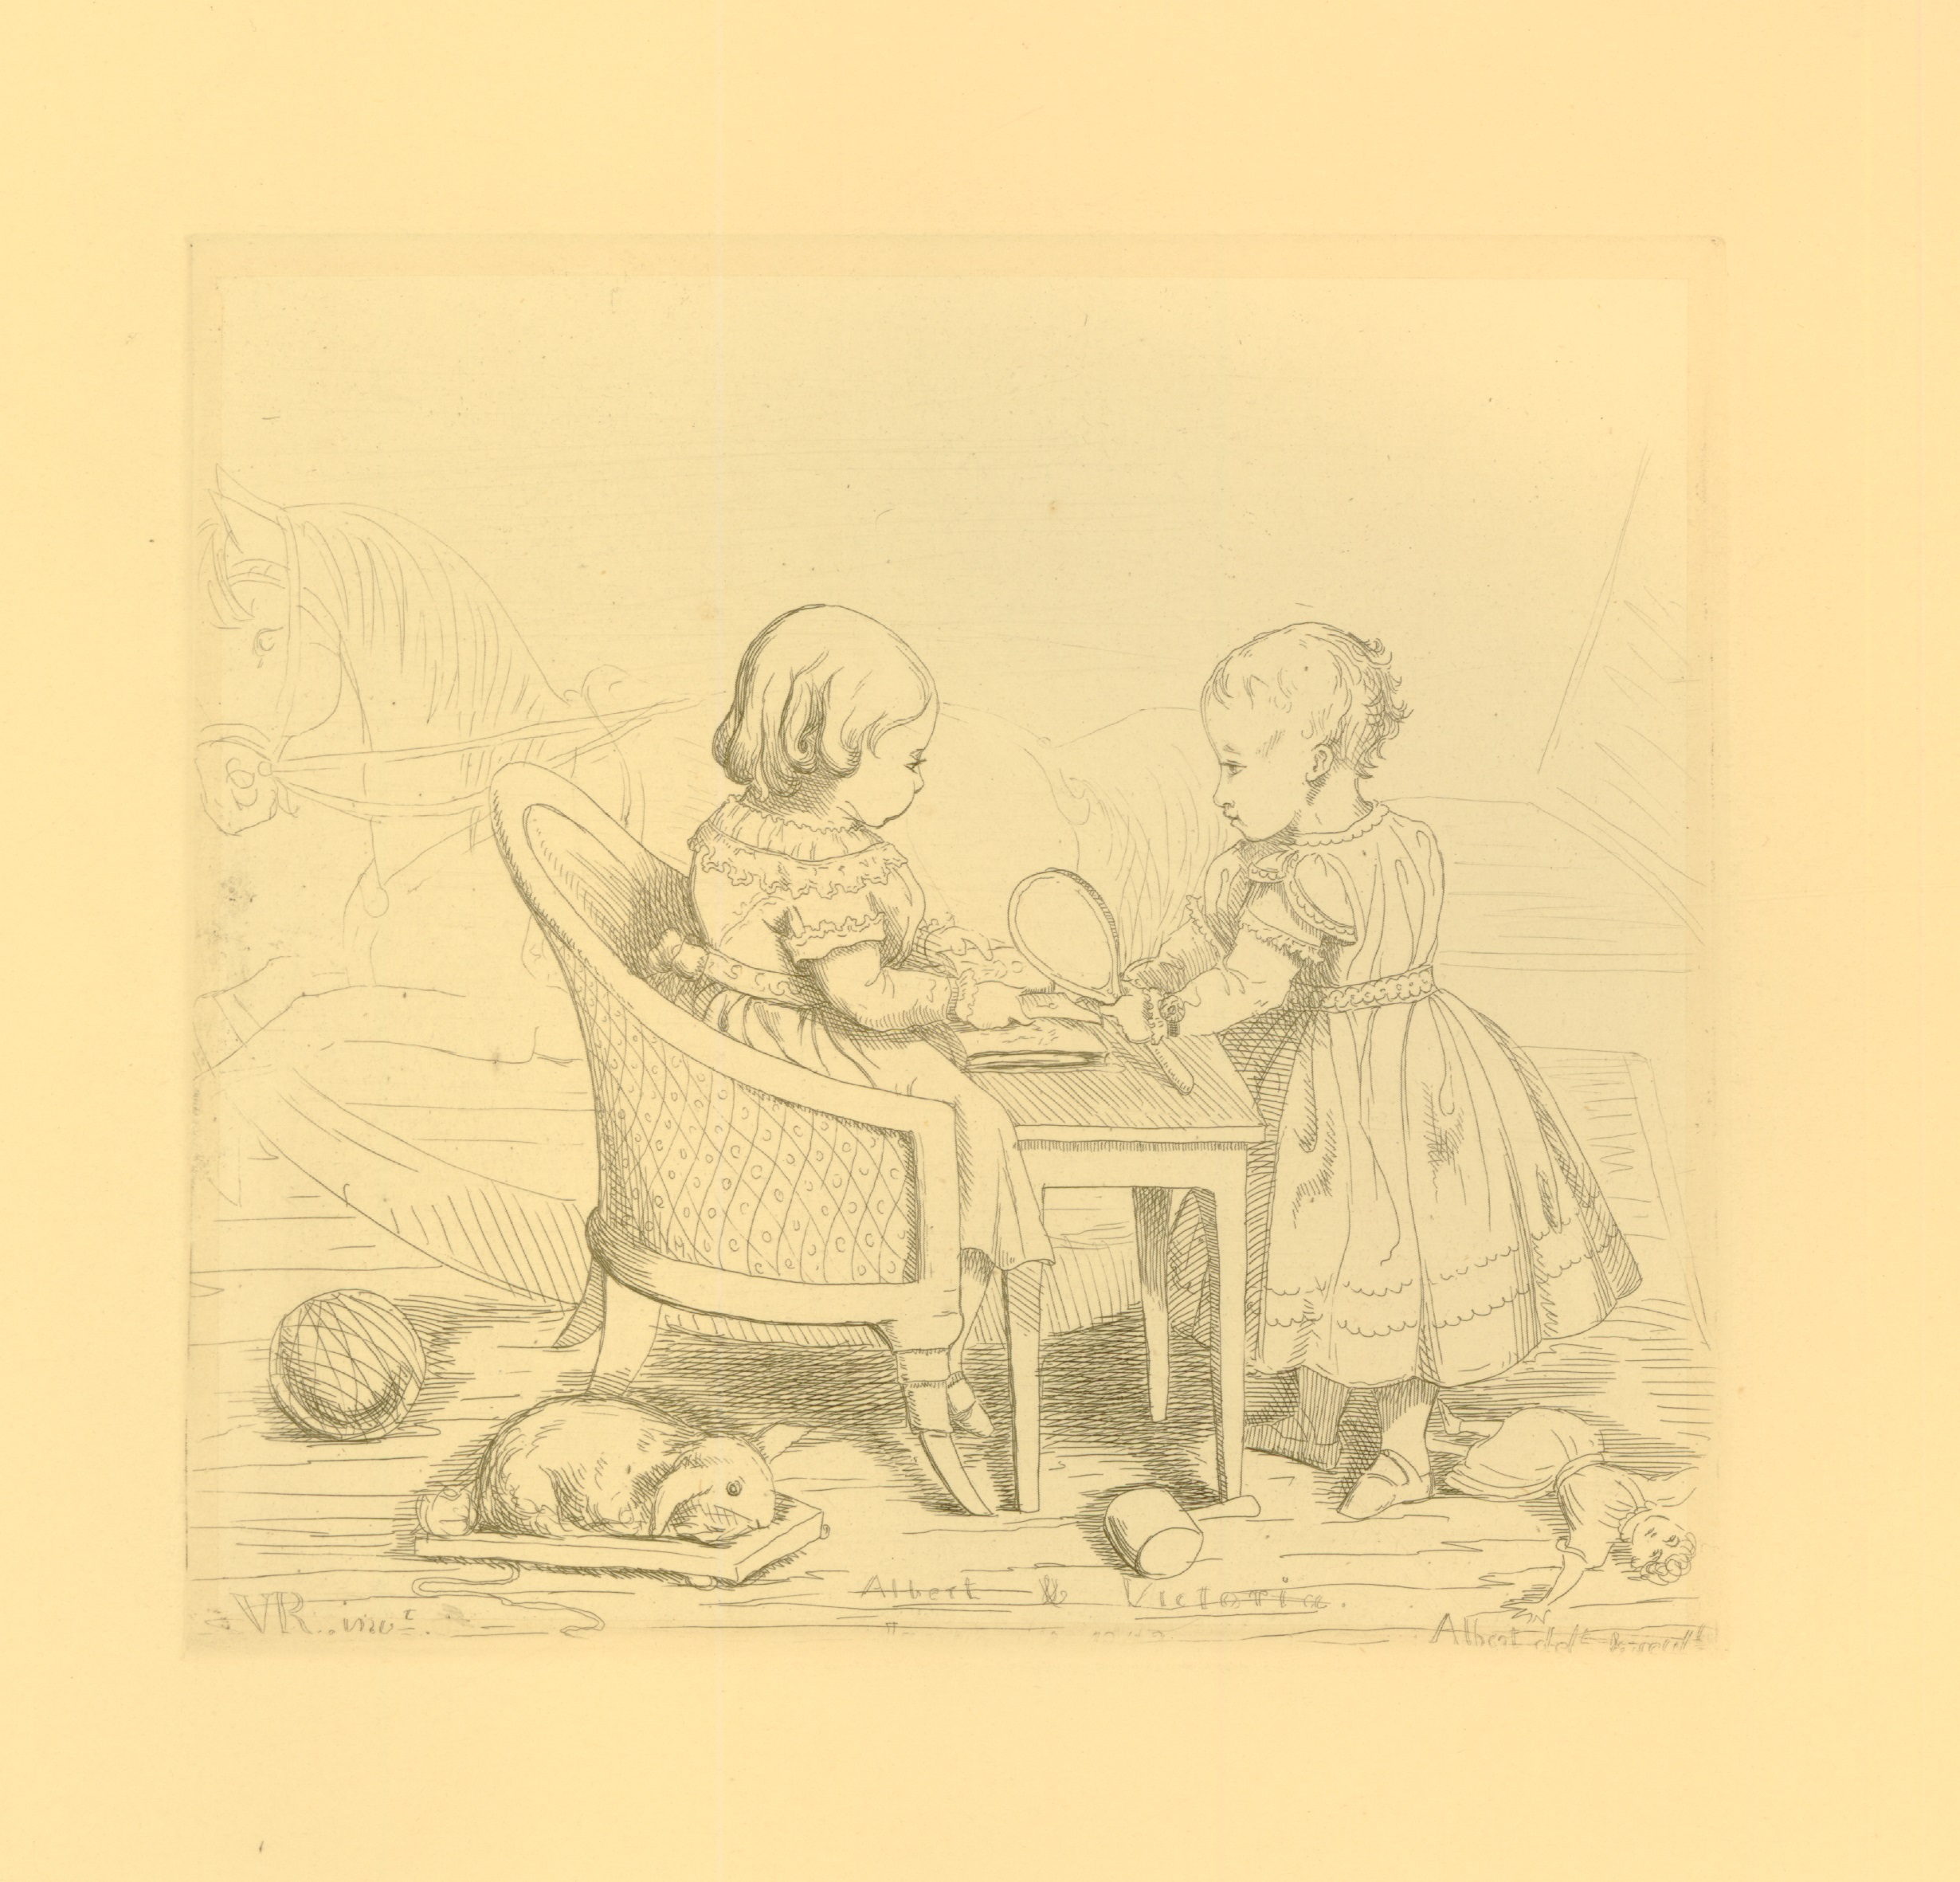 Etching by Queen Victoria and Prince Albert